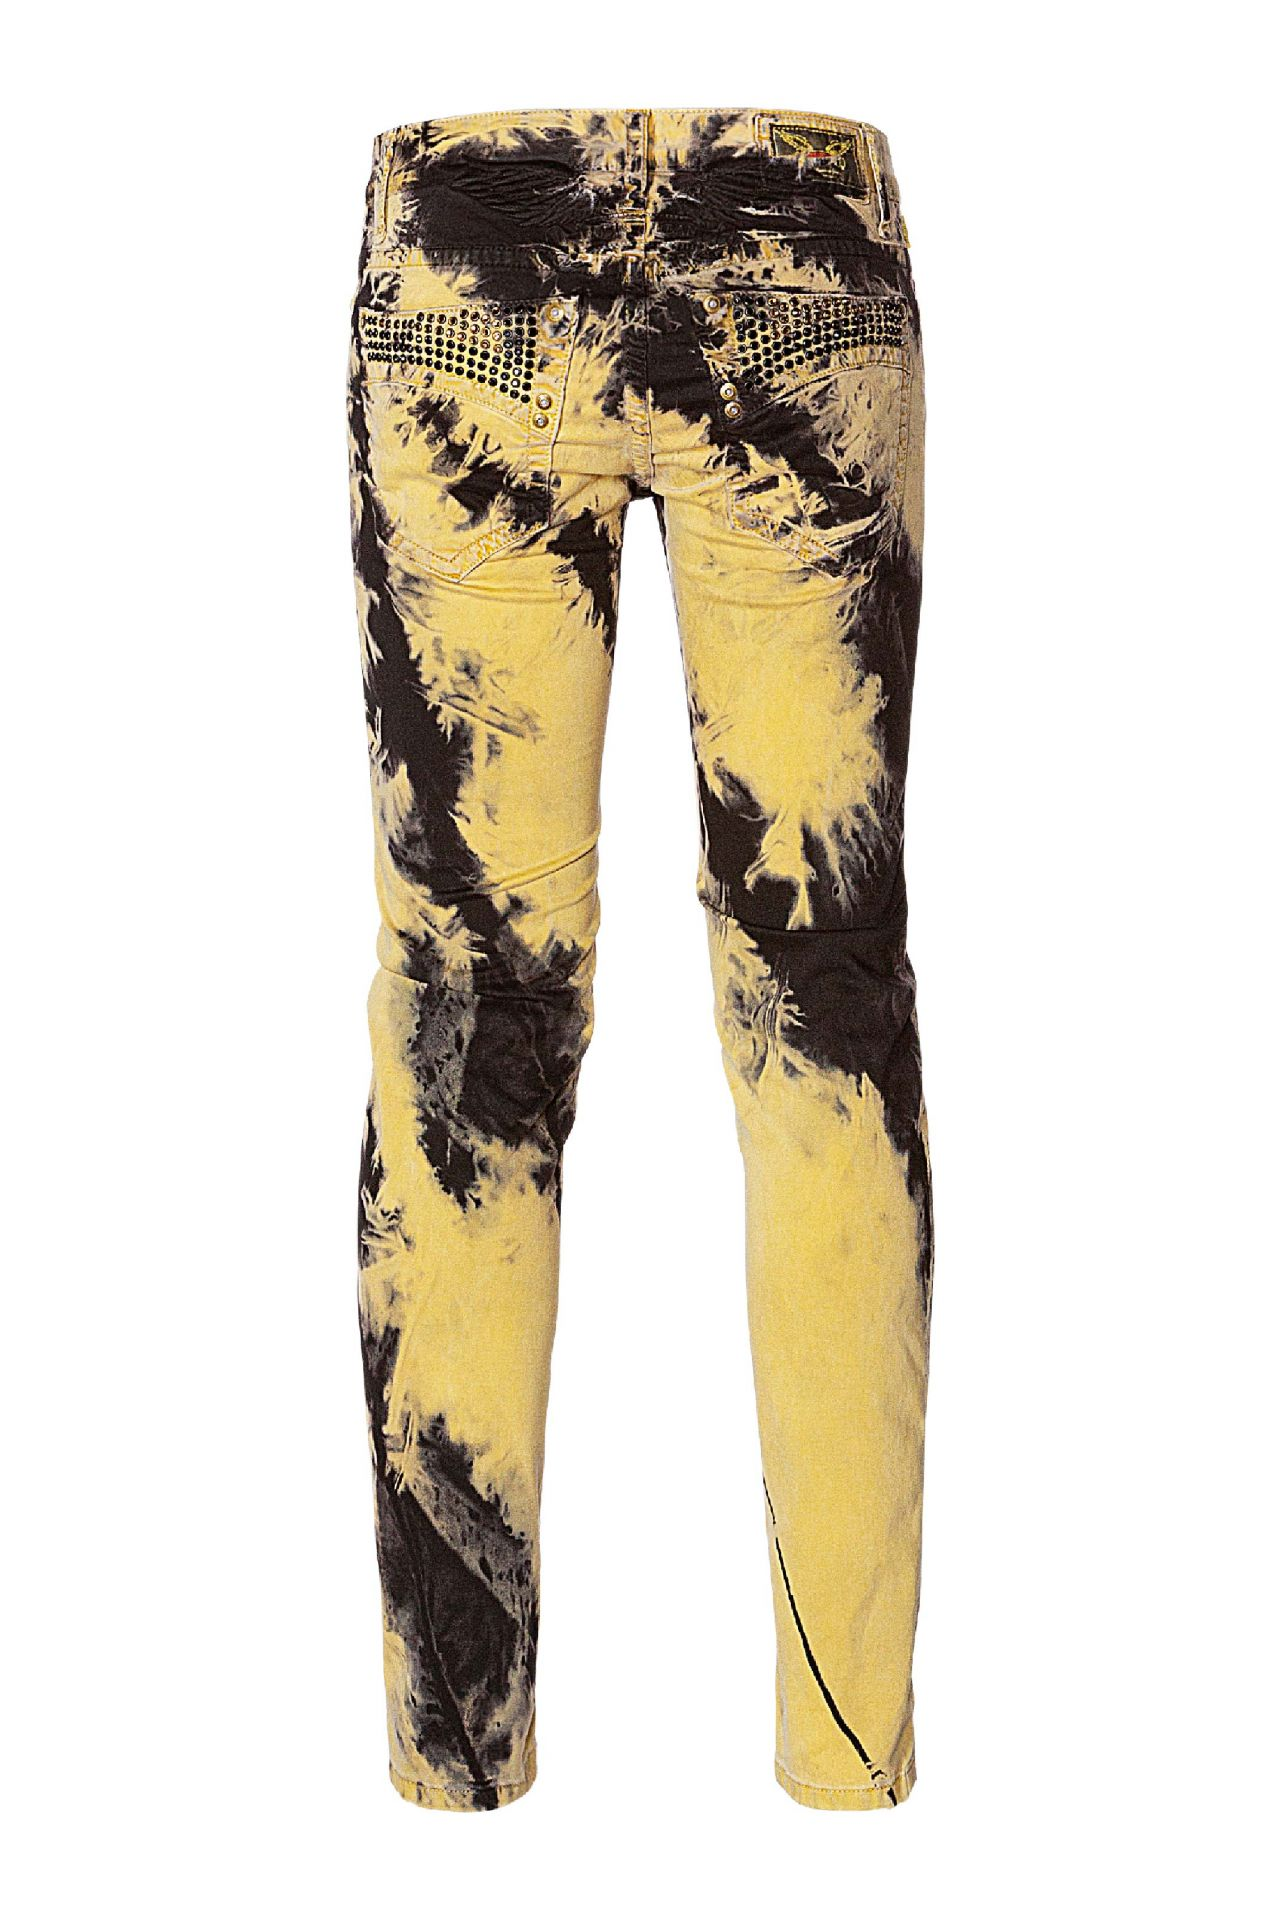 SKINNY JEANS  IN TIE DYE YELLOW WITH CRYSTALS